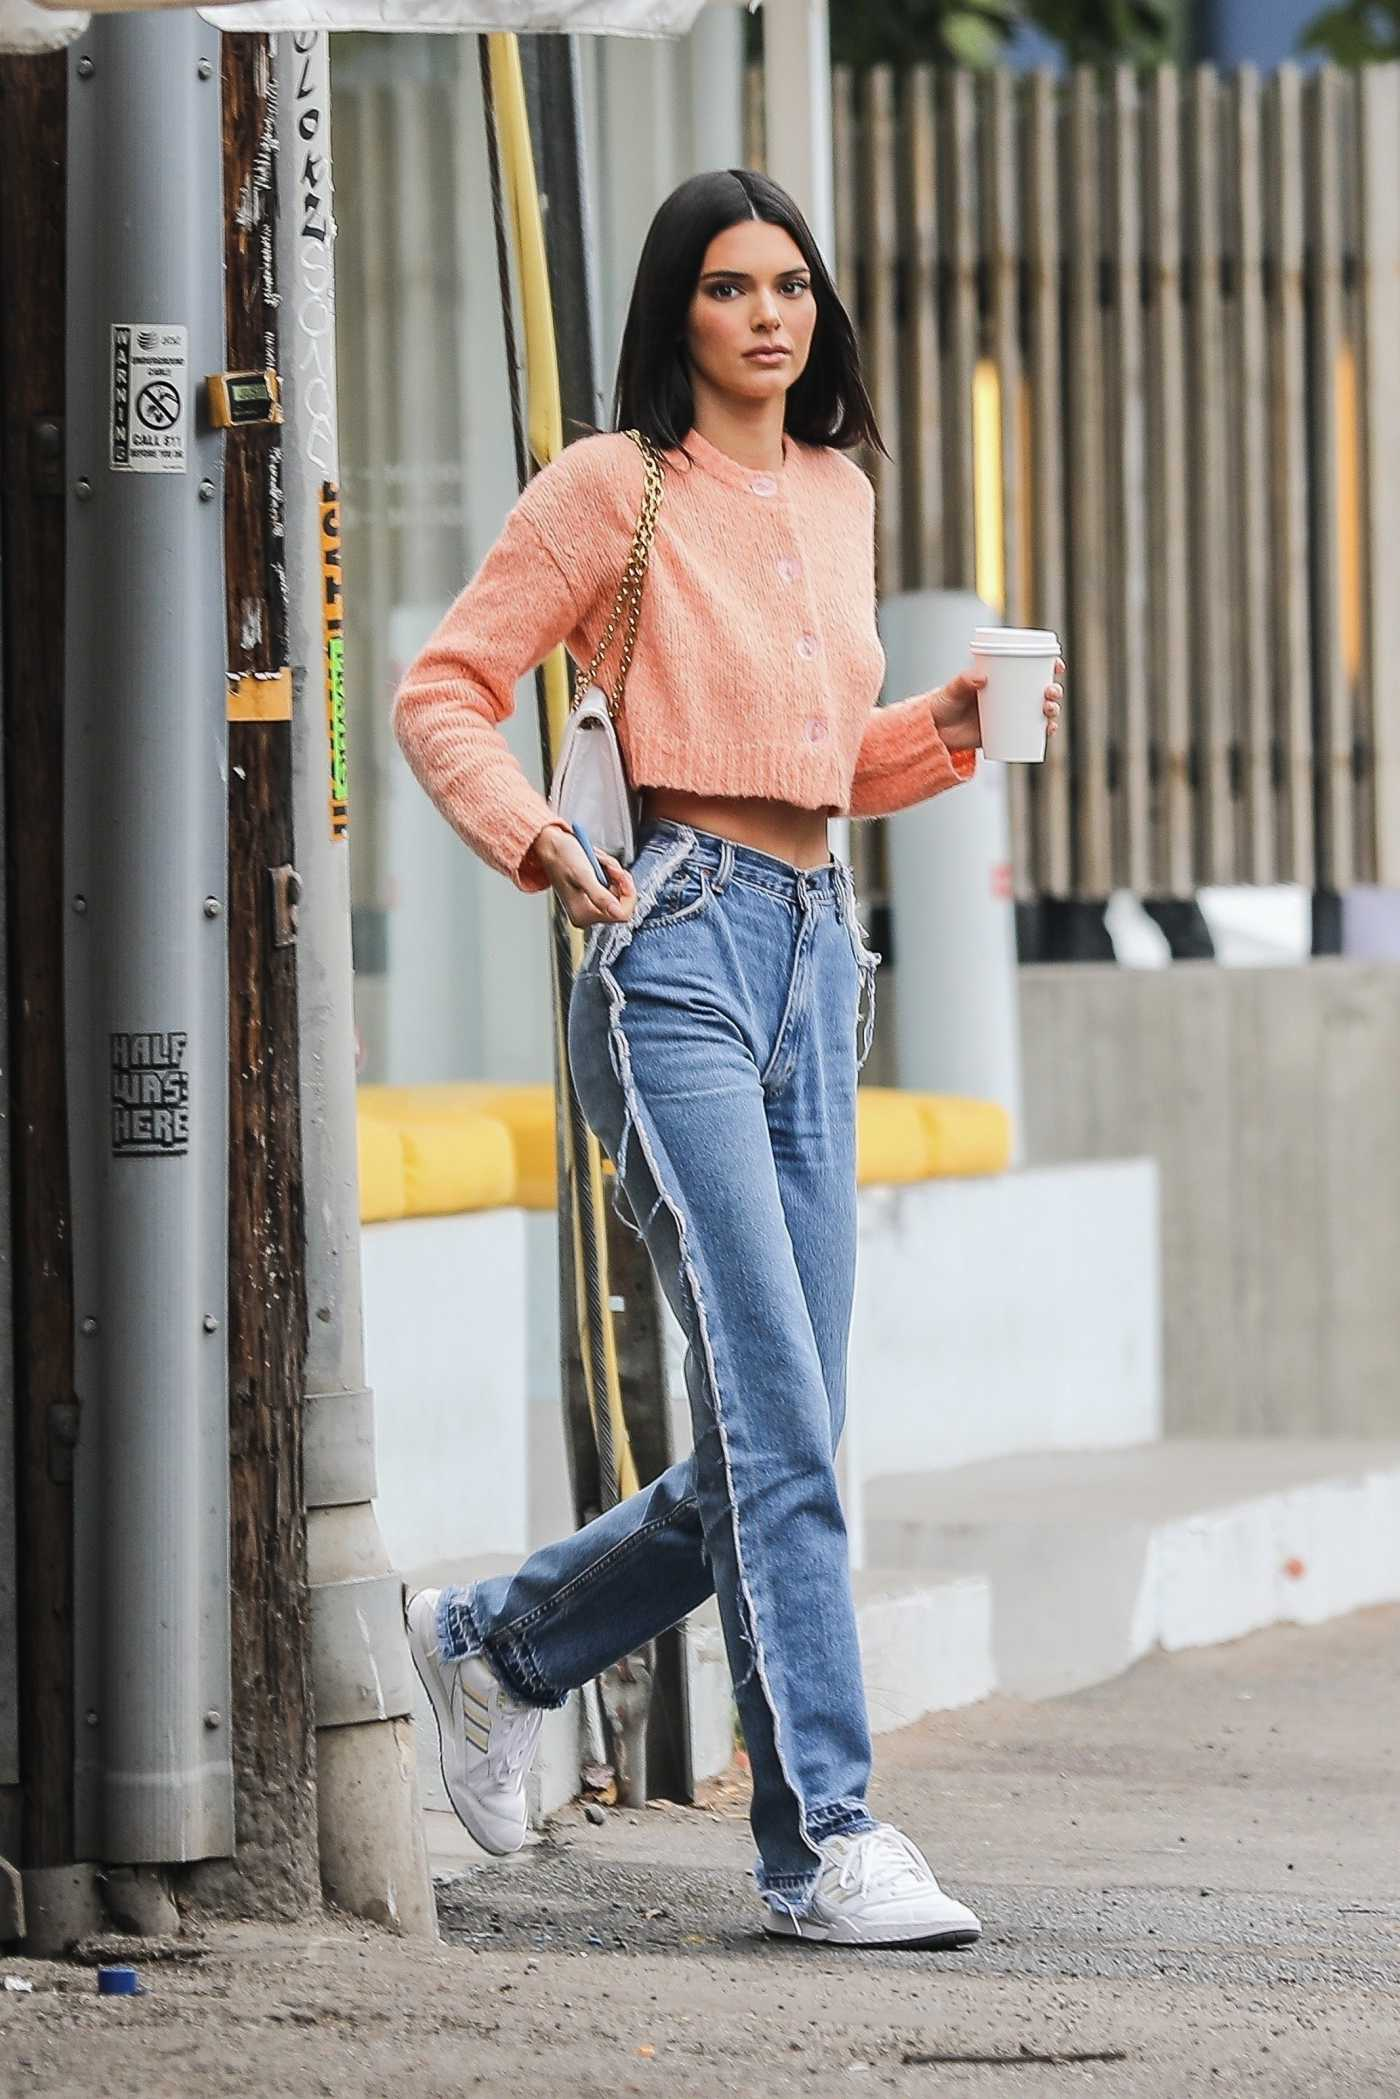 Kendall Jenner in a White Sneakers Was Seen Out in West Hollywood 06/25/2019